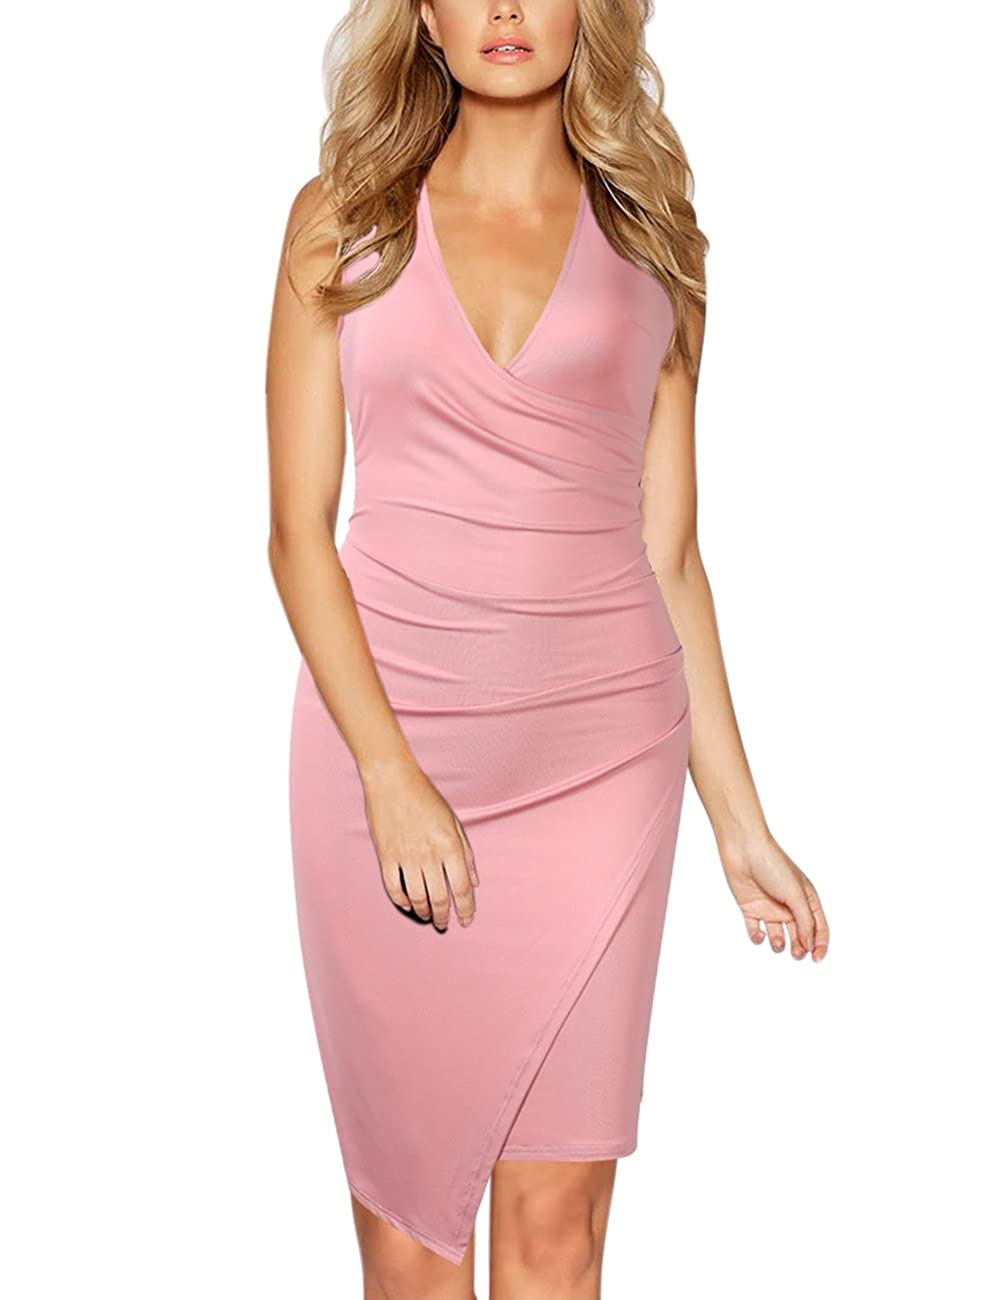 Pink GlorySunshine Women's Sleeveless V Neck Faux Wrap Ruched Midi Bodycon Cocktail Pencil Dress